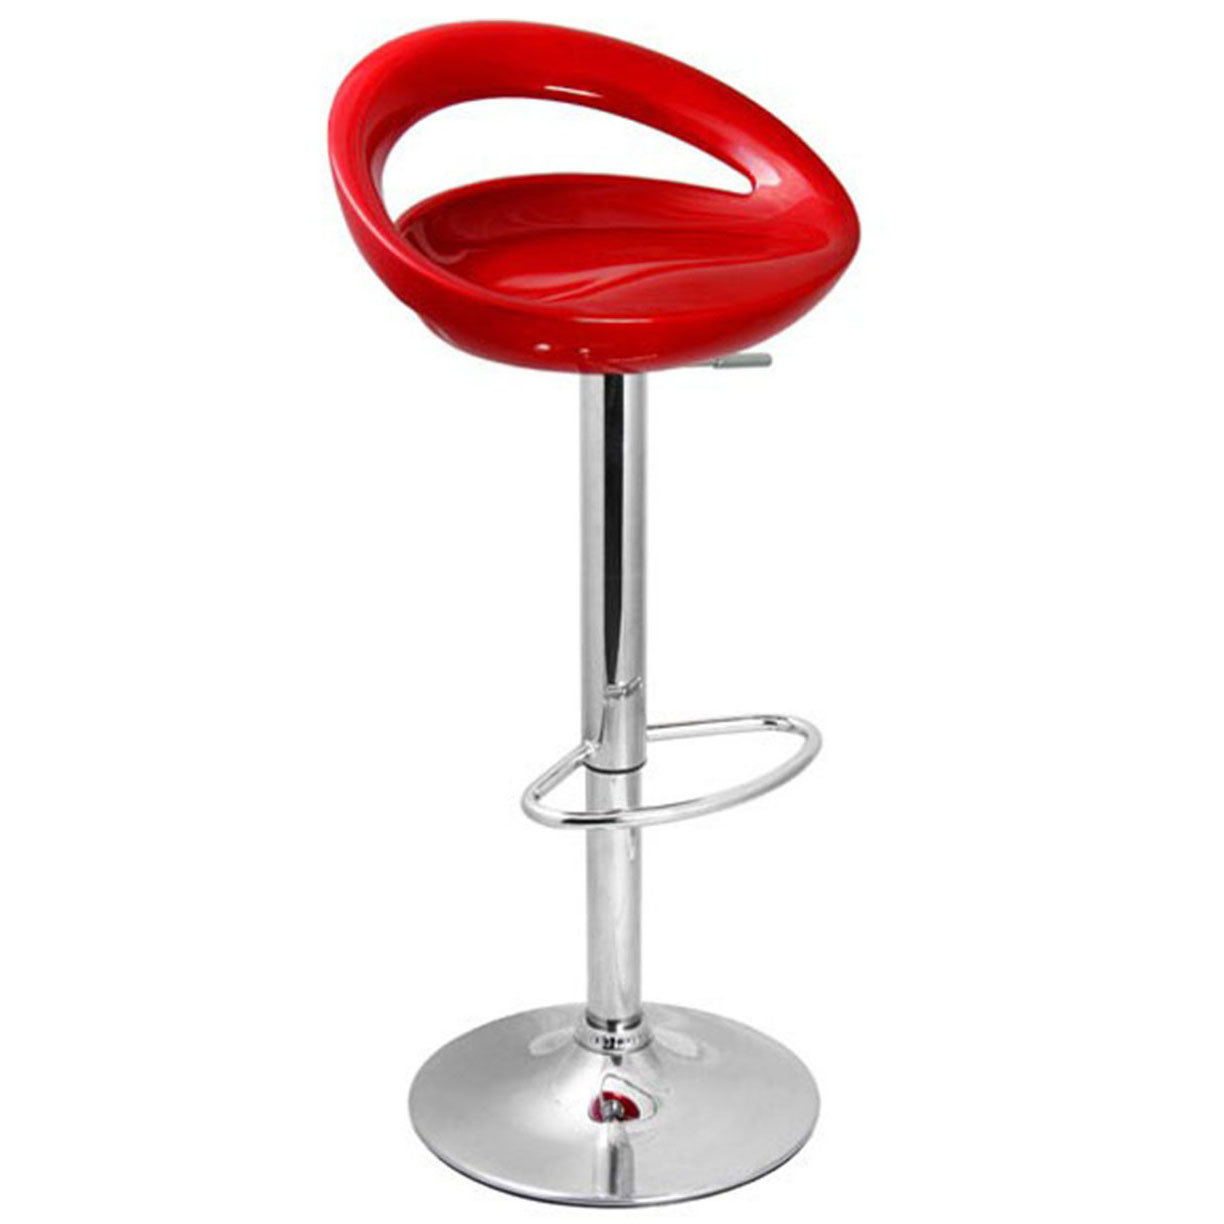 Sorrento Swivel Bar Stool - Red